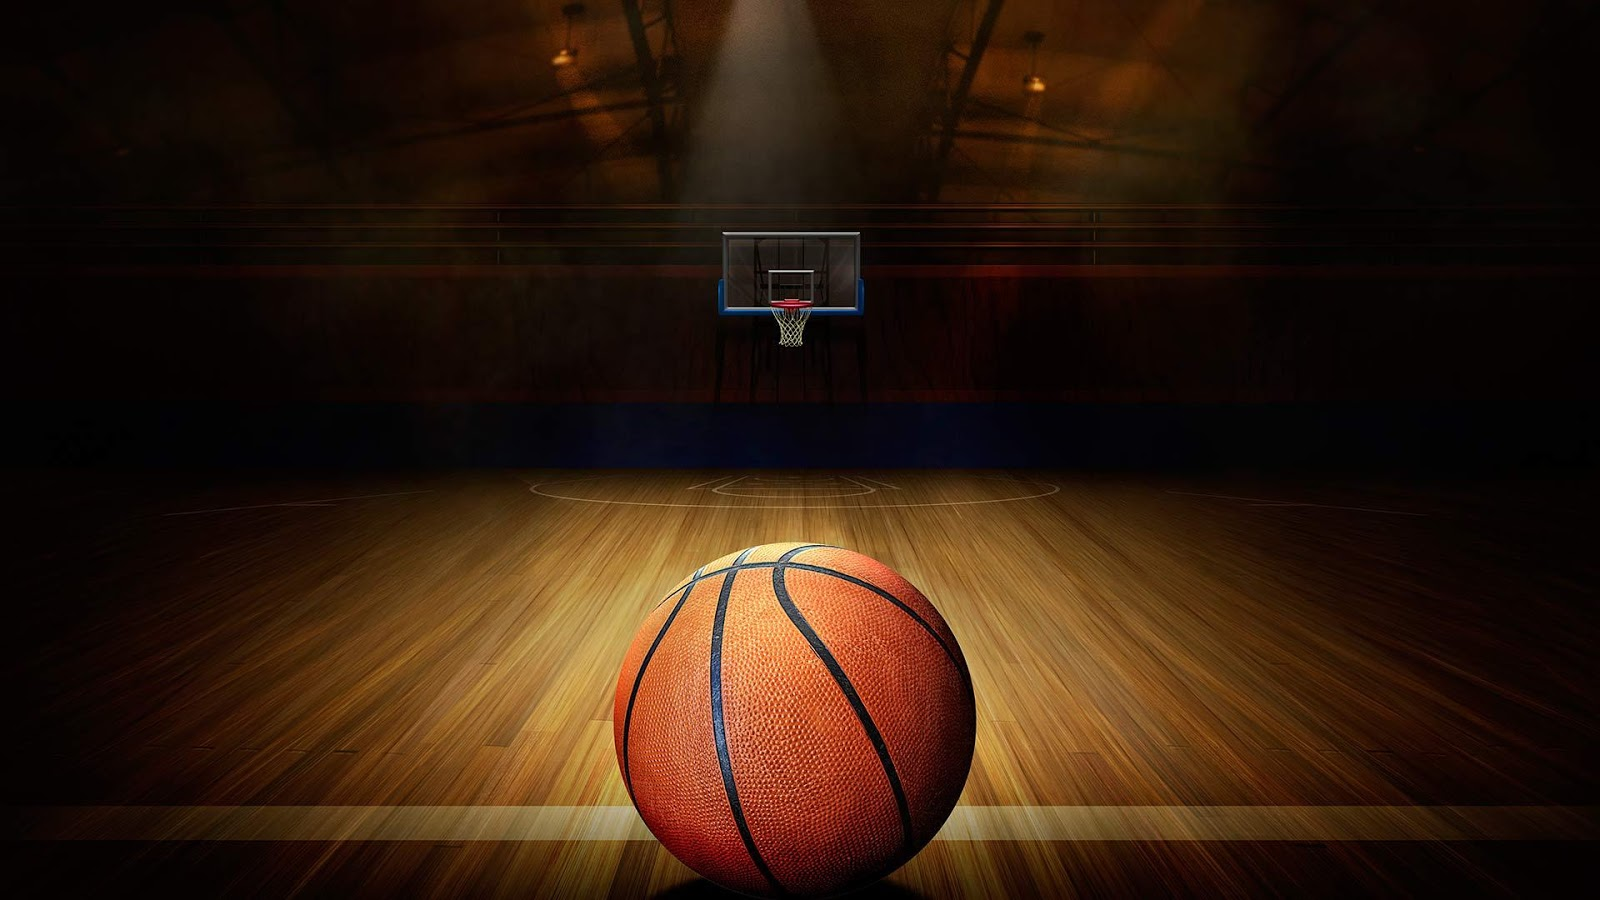 Cool Basketball Wallpaper 6781135 1600x900